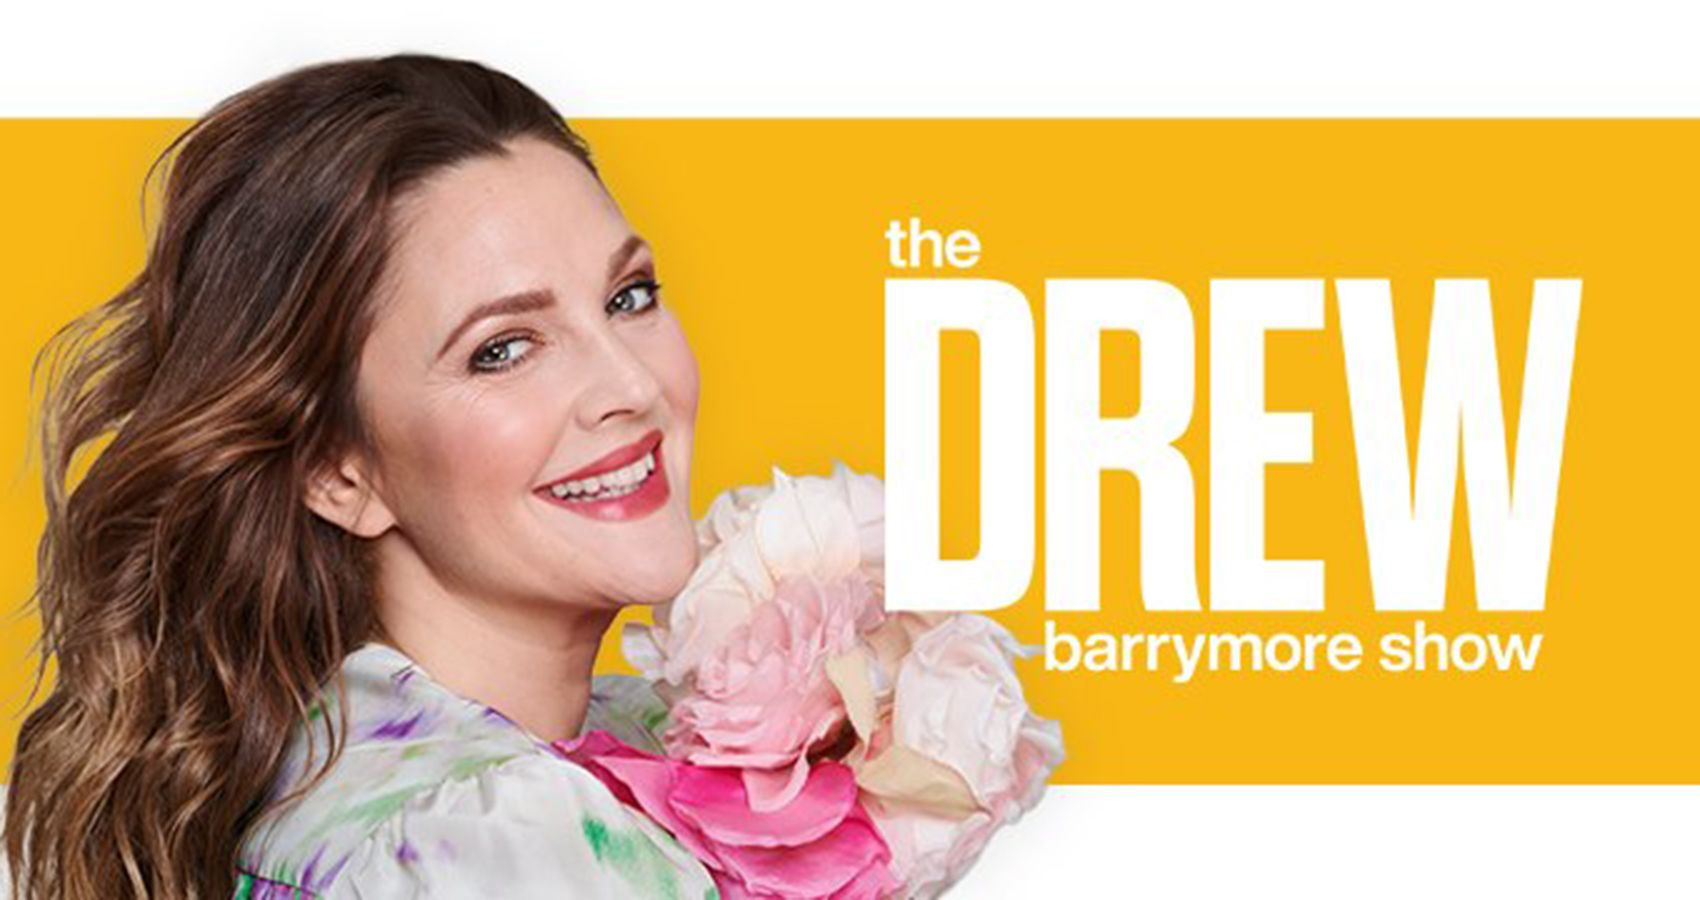 Drew Barrymore Is Real In New Show For Her Kids | Moms.com